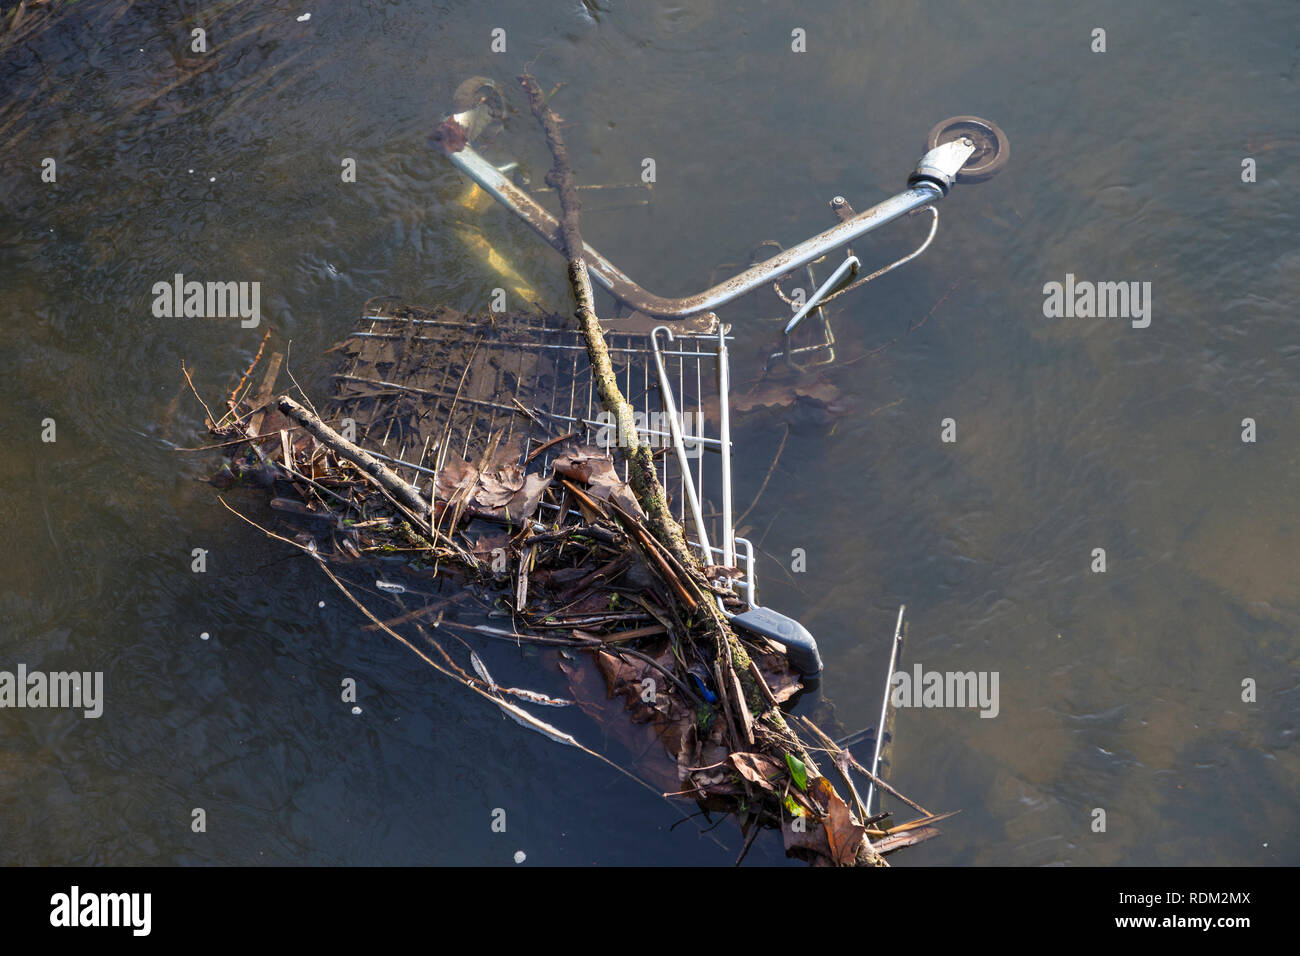 Supermarket trolley dumped in a river, uk - Stock Image